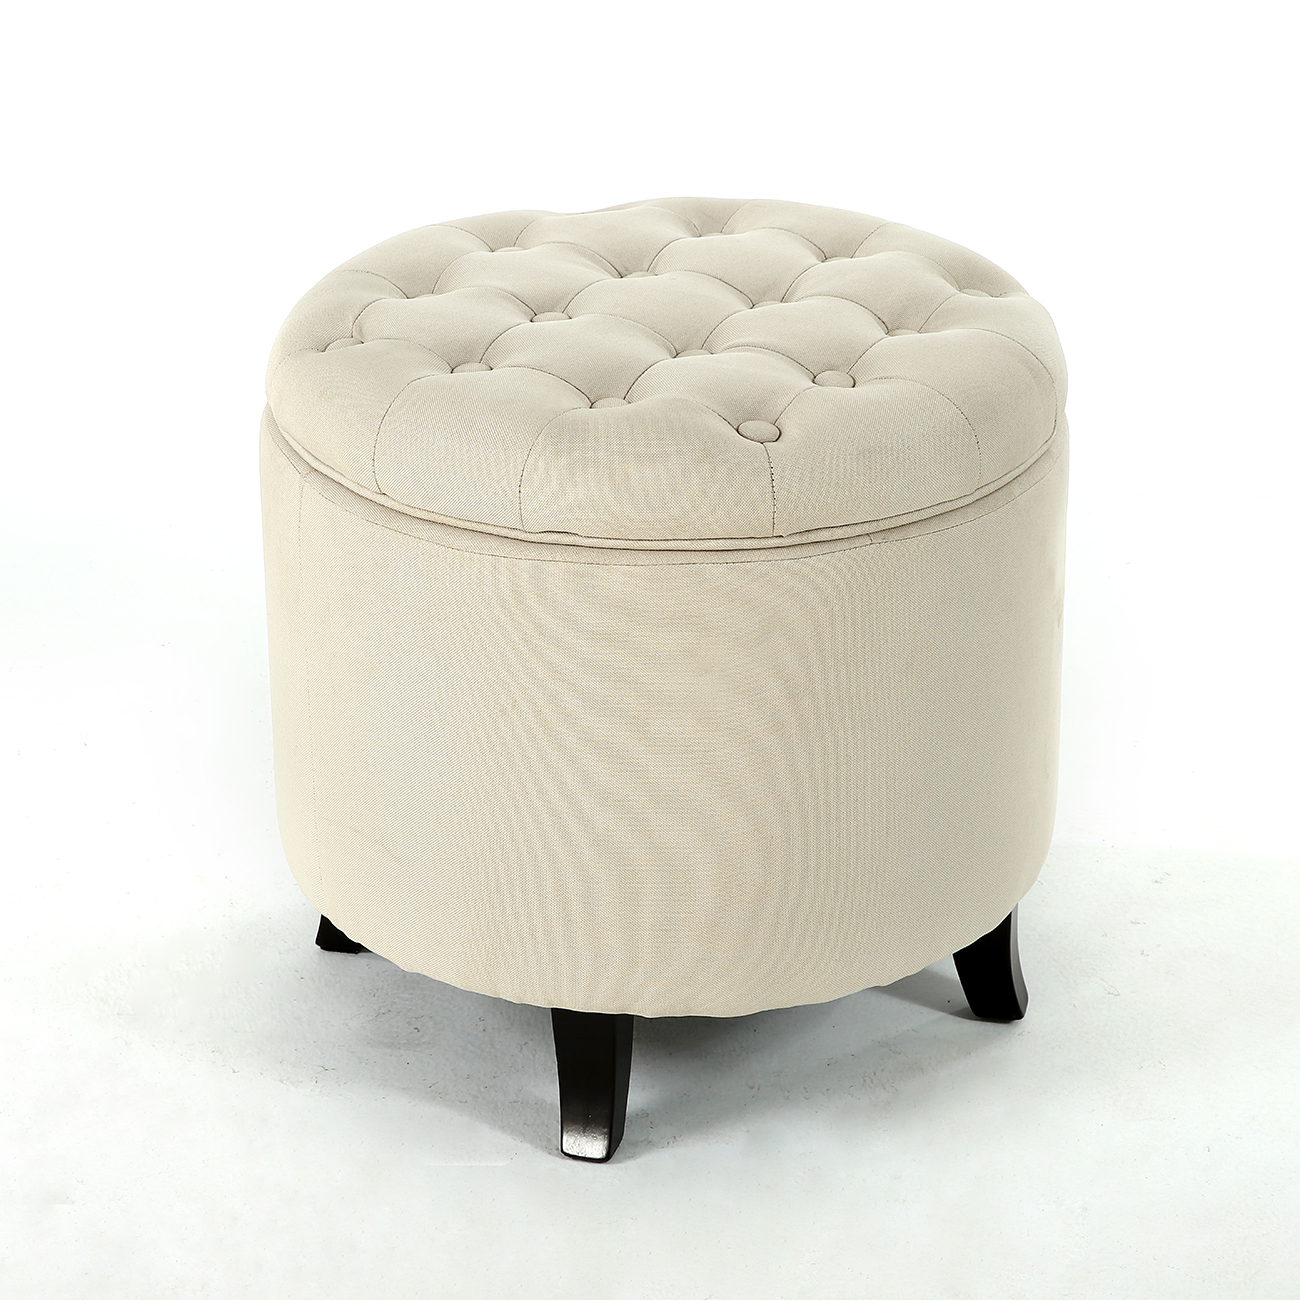 round storage ottoman beige upholstered button tufted foot stool seat top lift ebay. Black Bedroom Furniture Sets. Home Design Ideas